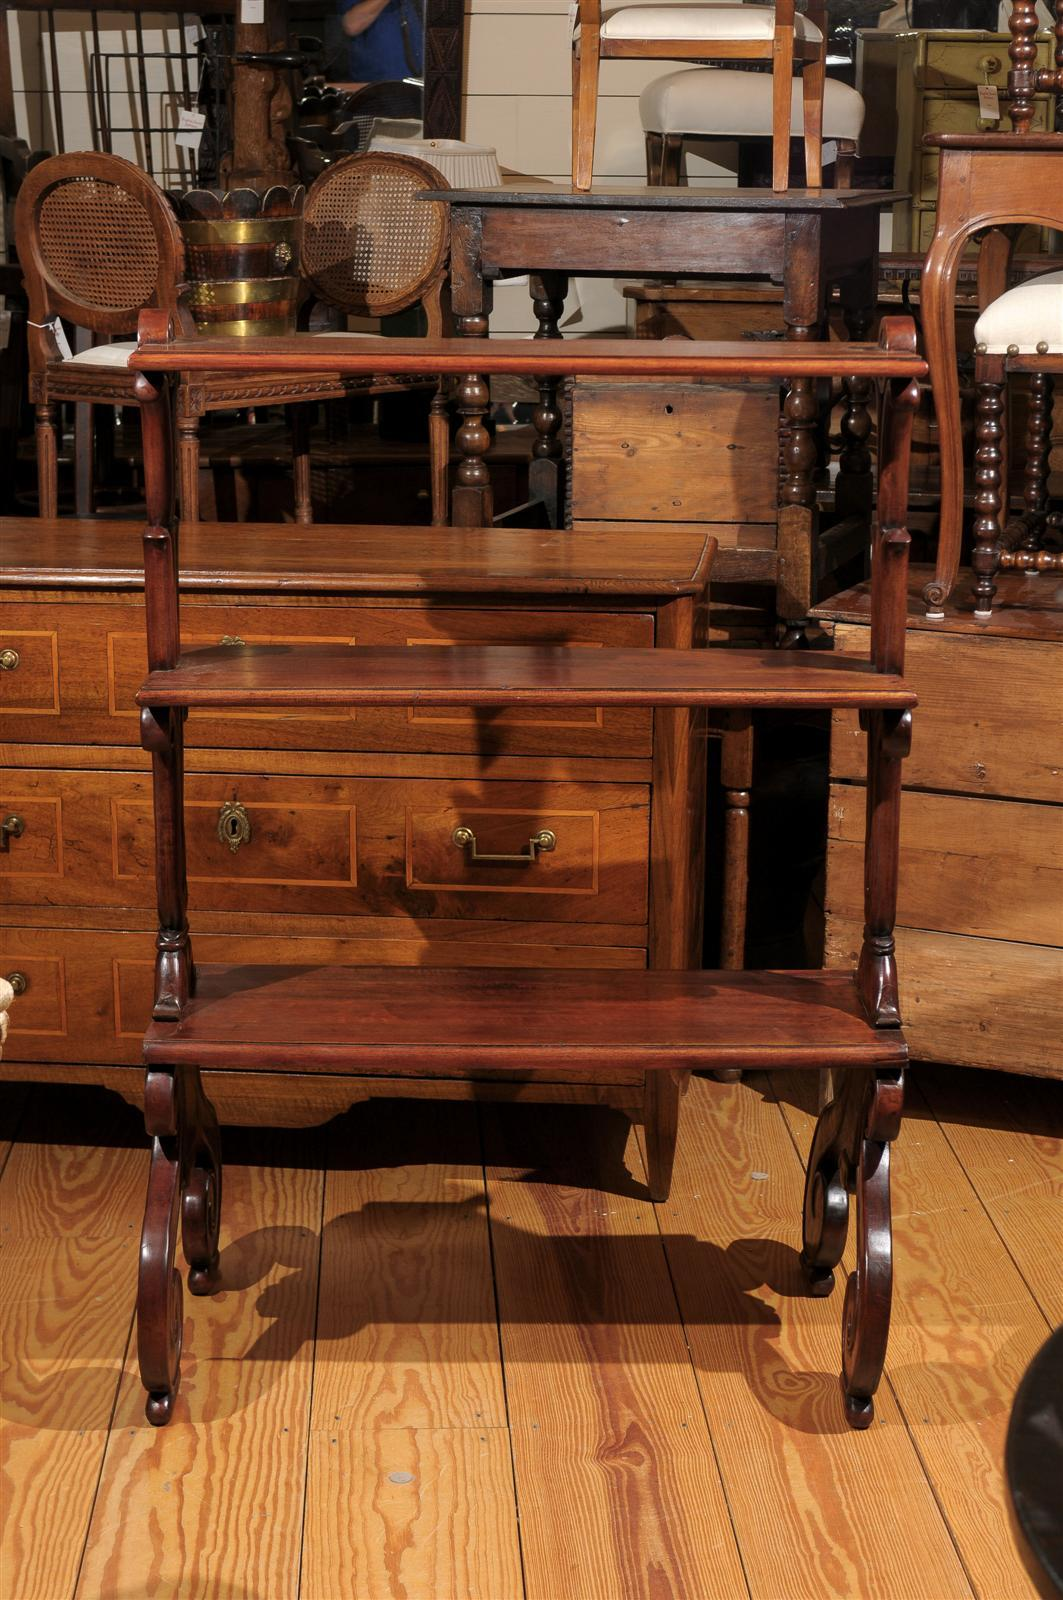 Mahogany Three-Tiered Shelf with Scrolled Legs from the Late 19th Century For Sale 6